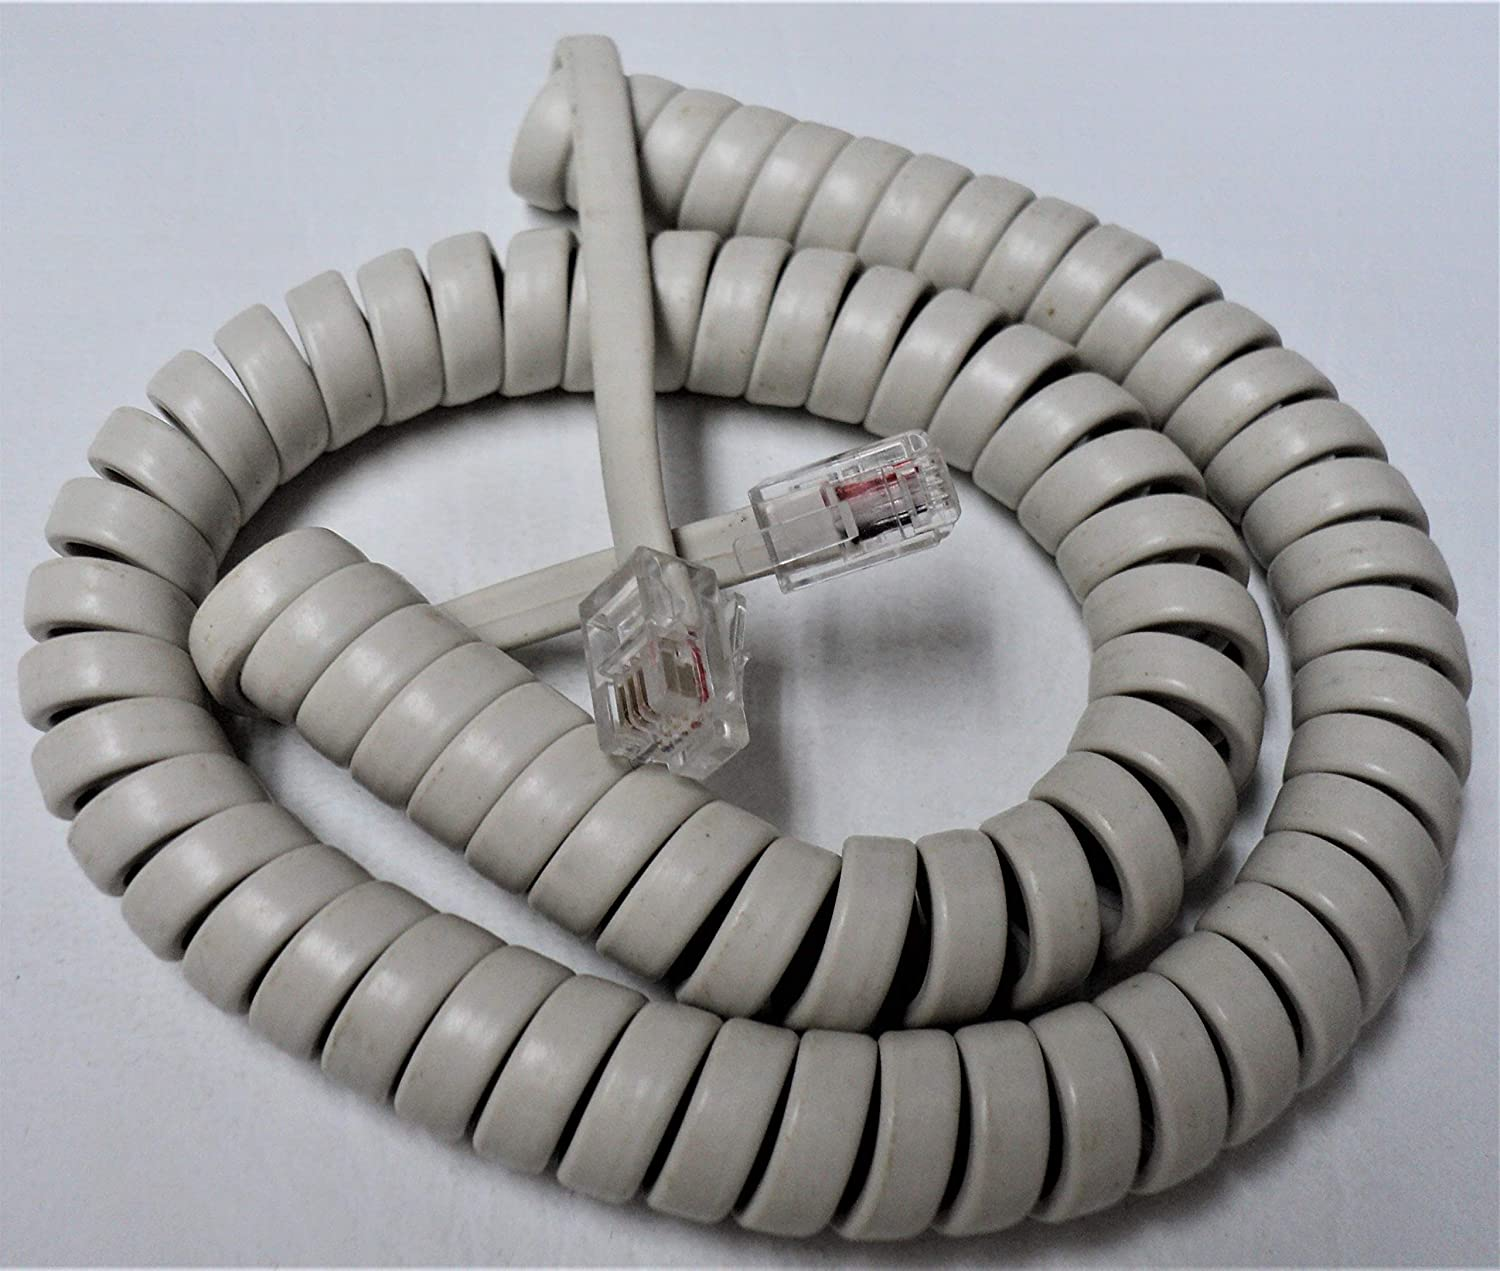 Office NEW 12 Foot Handset Curly Cord Samsung Falcon iDCS 8D 18D ...